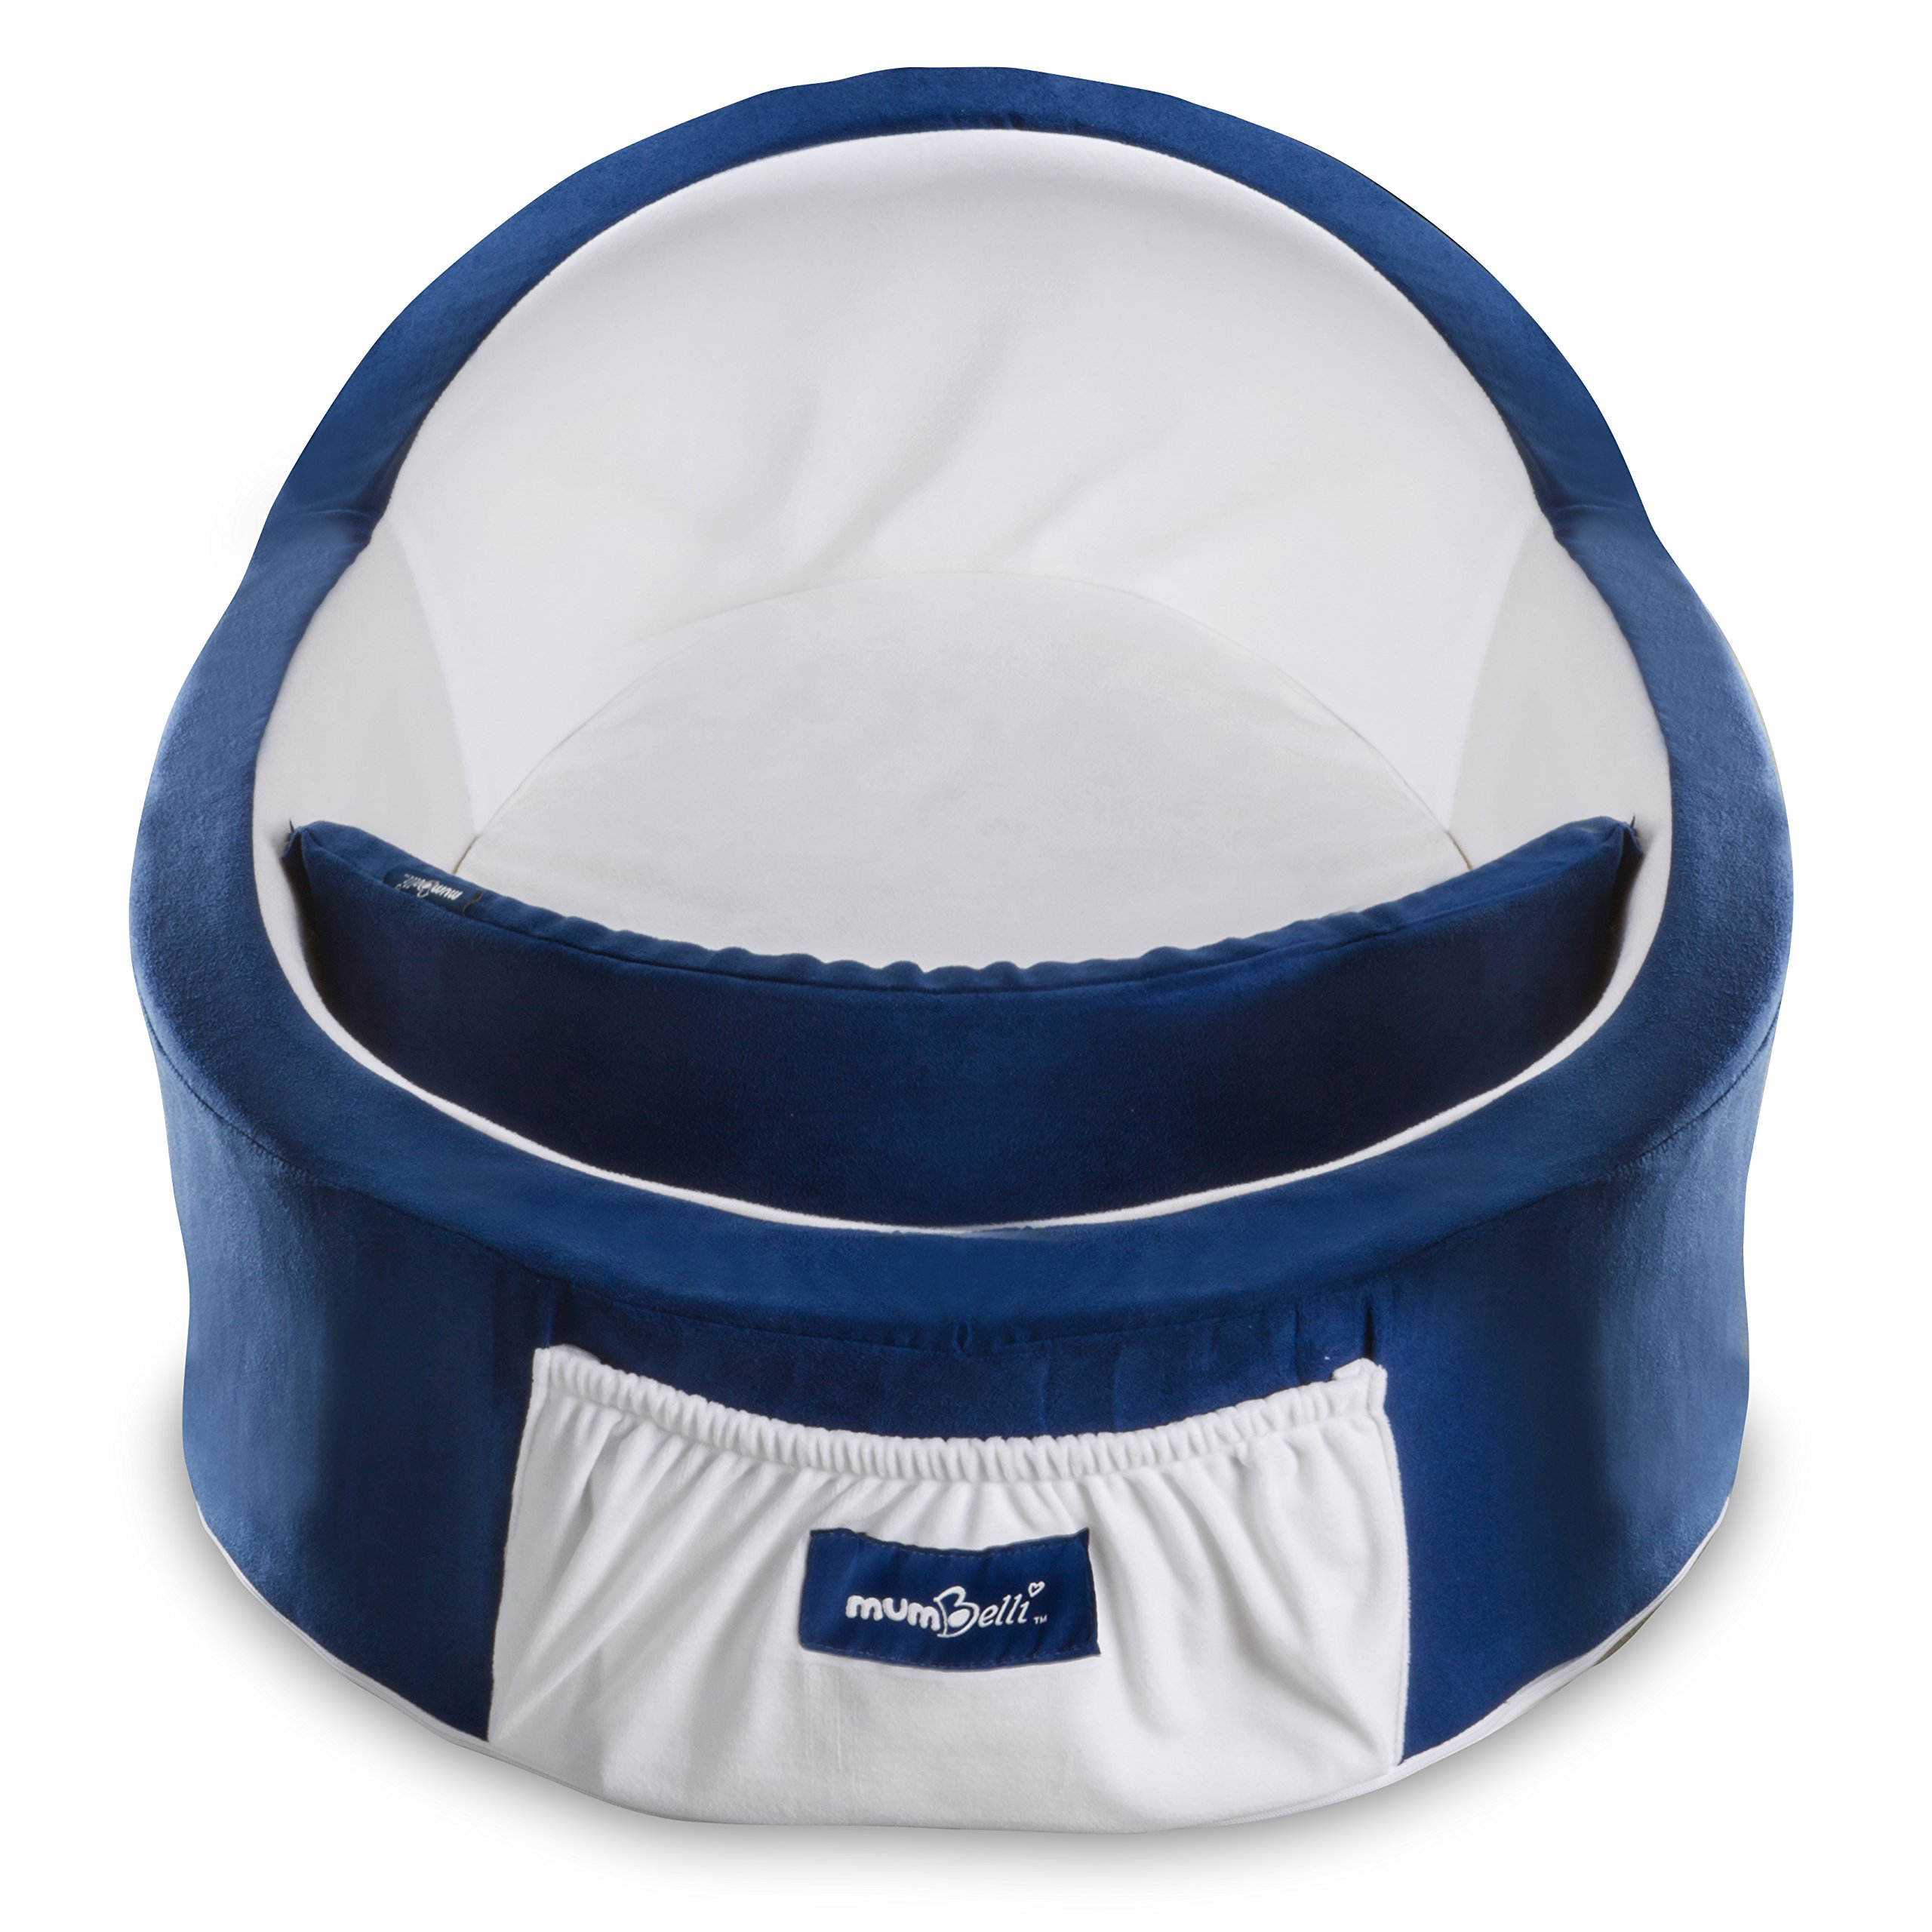 Mumbelli – The only Womb-Like and Adjustable Infant Bed; Patented Design (Nautical). Use as a Sleep transitioner, Lounger and co Sleeping. Reflux Wedge and Carry Bag Included. by Mumbelli (Image #2)